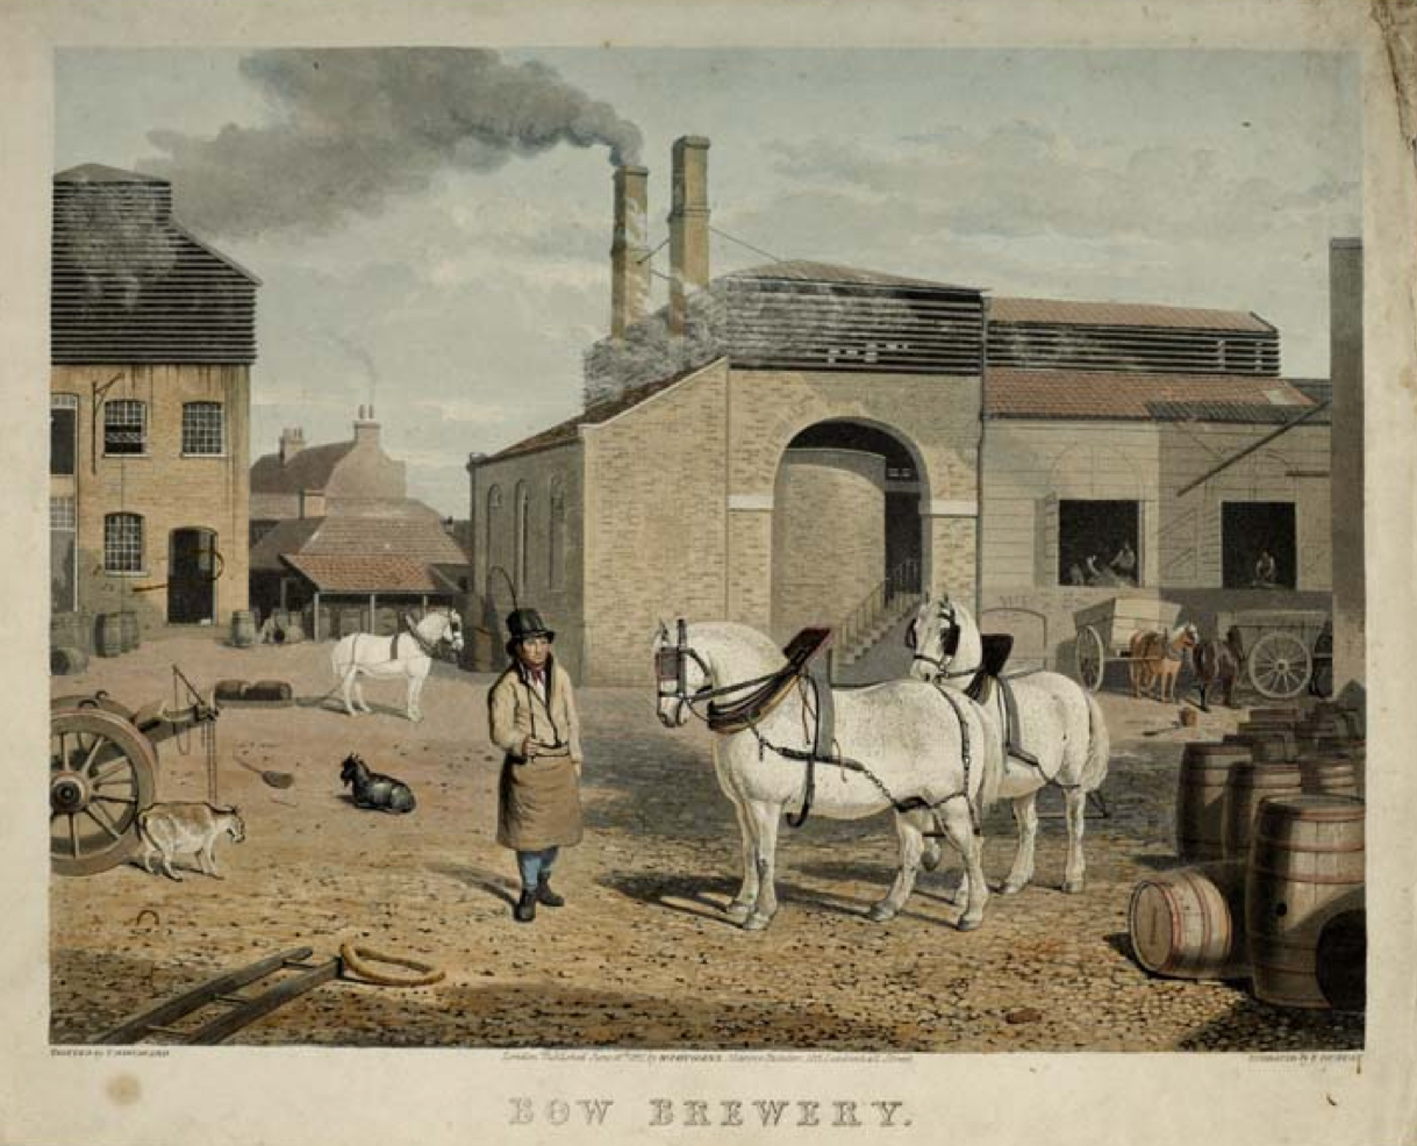 The Bow Brewery in 1827: picture from the Mueum of London